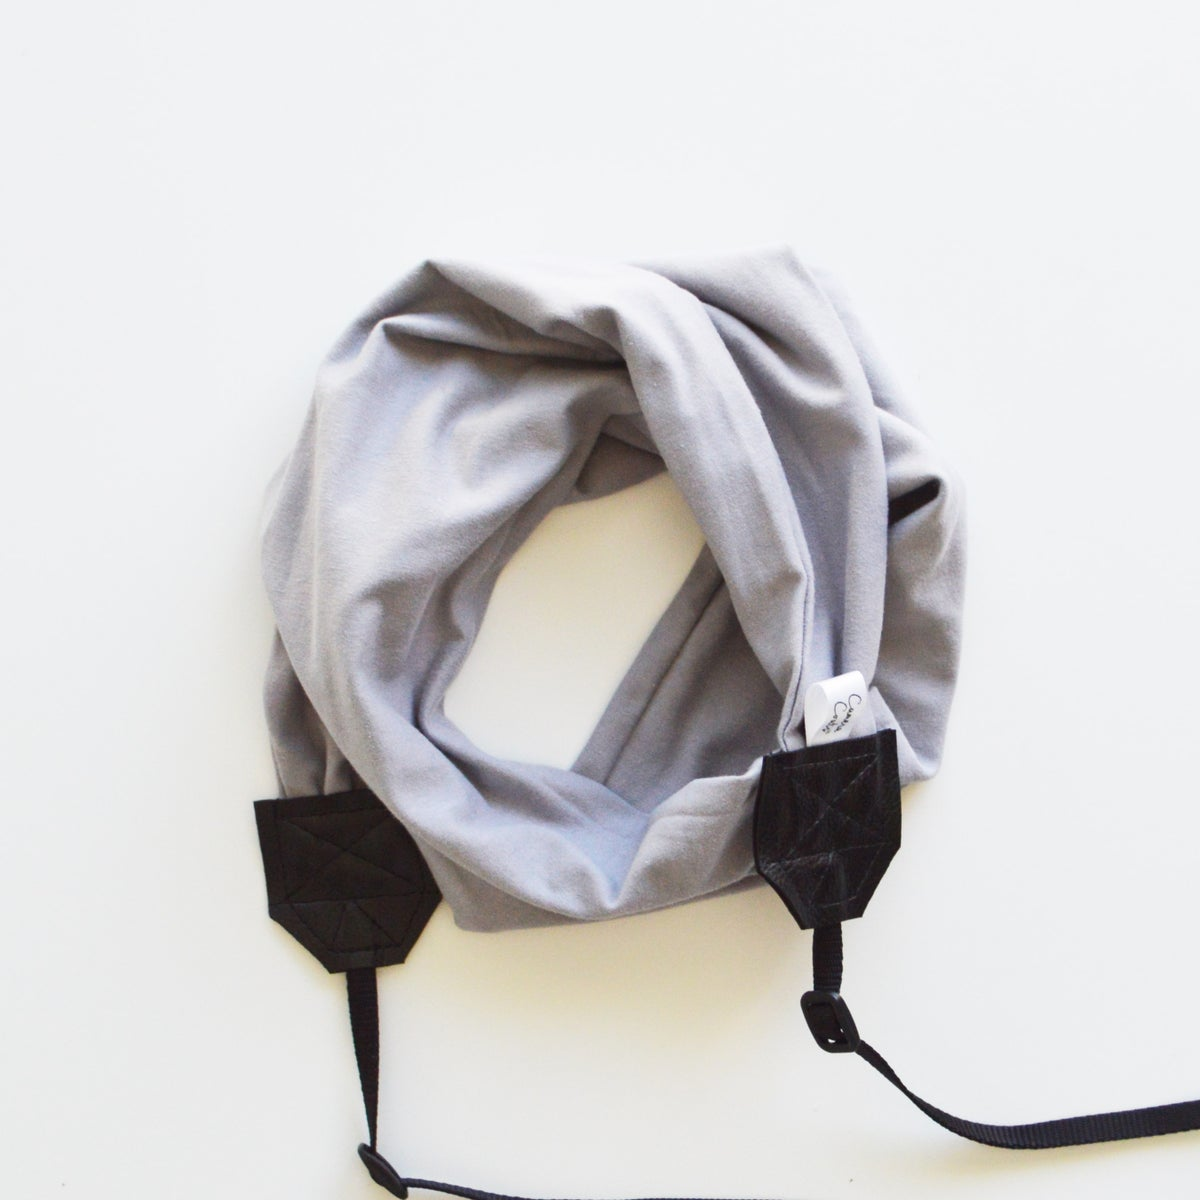 Image of Photographer Gift 2019 - Scarf Soft Knit Cross body Top Seller Comfy Cute